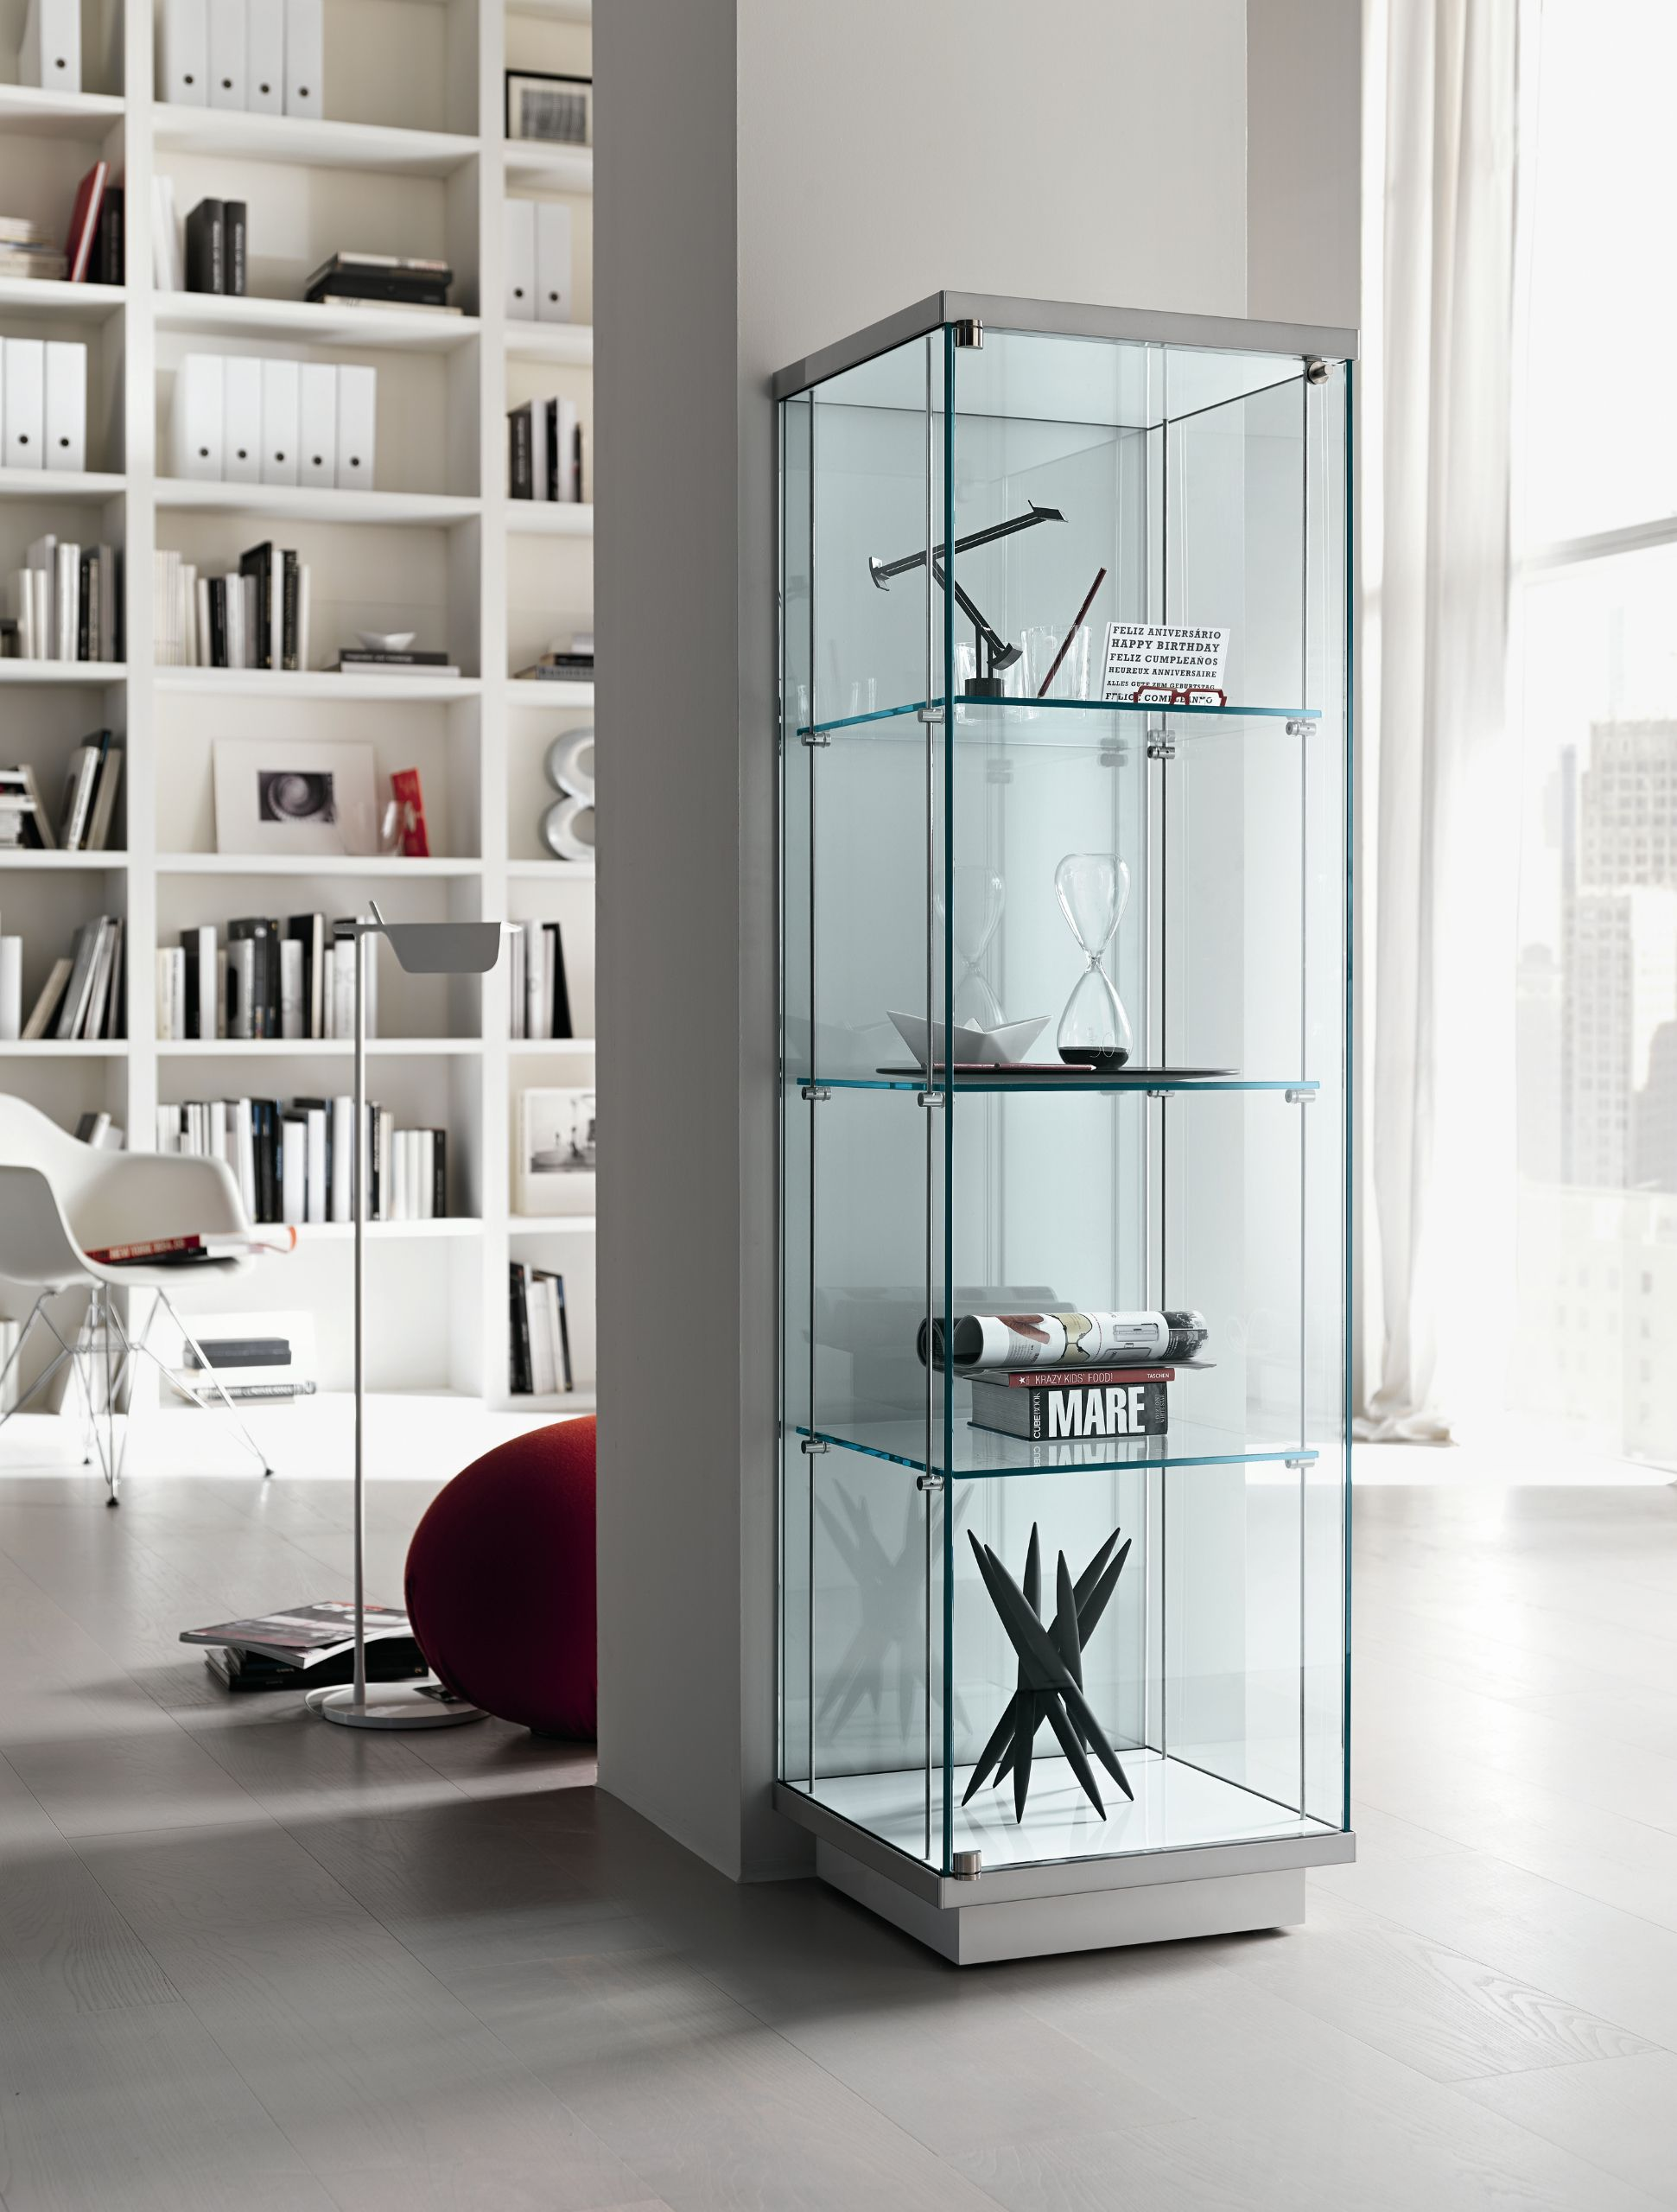 display images on best glassshowcaese ranges glass cabinets cabinet pinterest